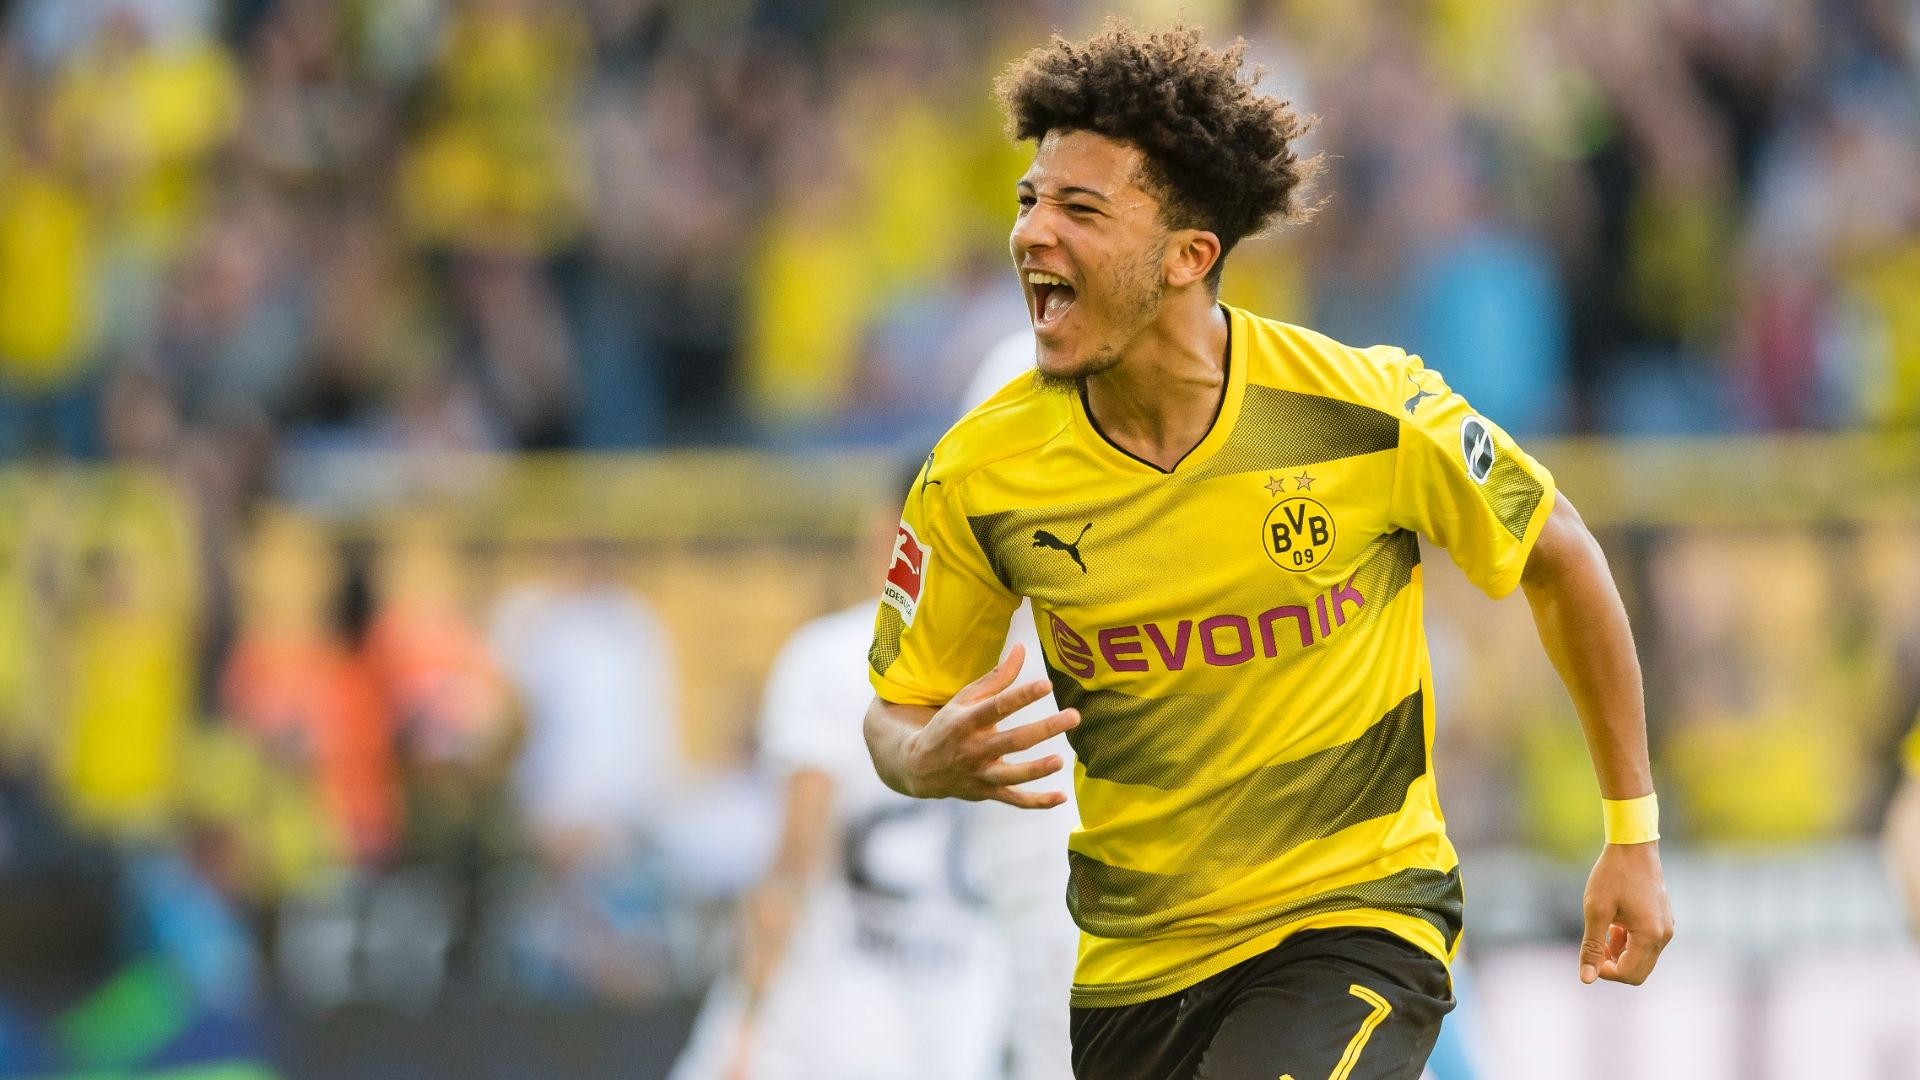 Dortmund's Sancho: Neymar is my role model